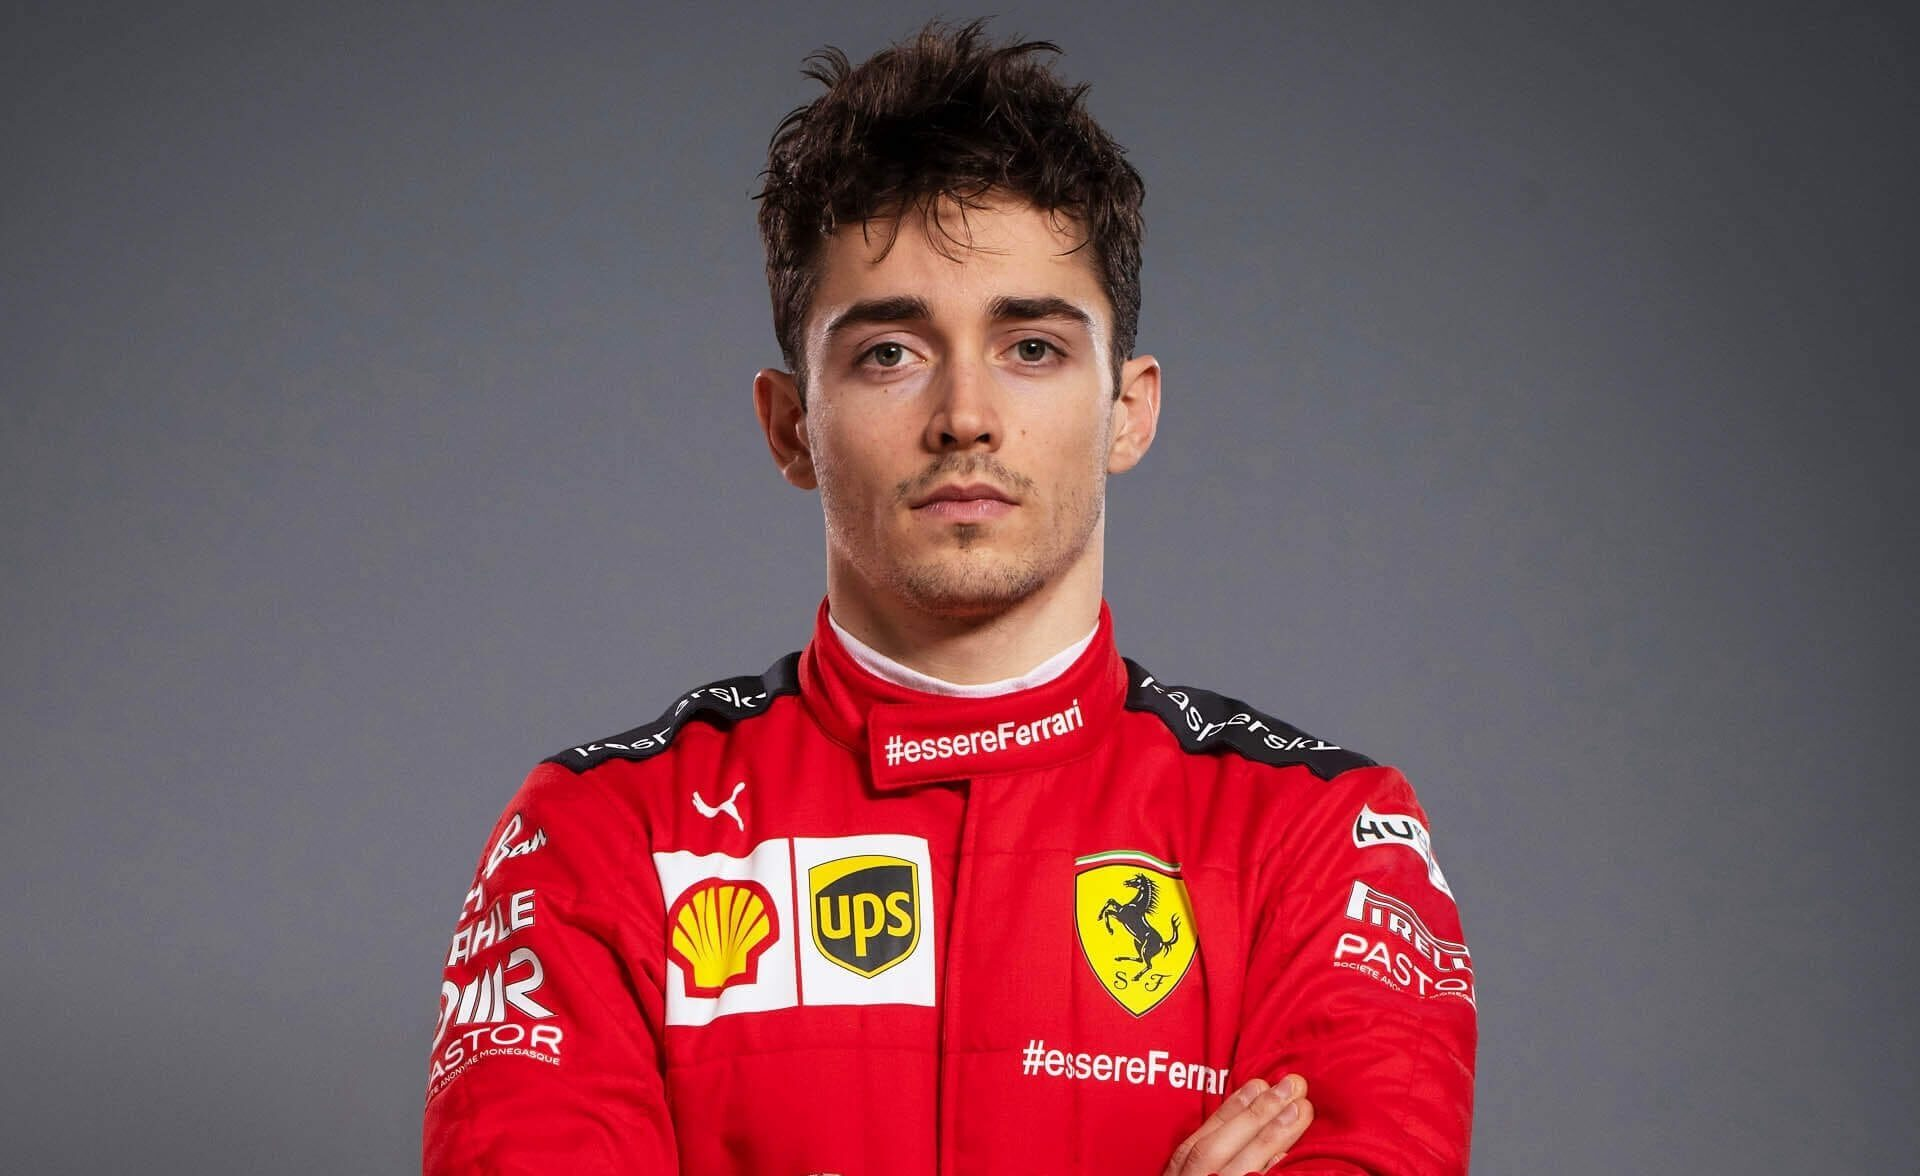 Charles Leclerc Top 10 F1 Drivers in 2020